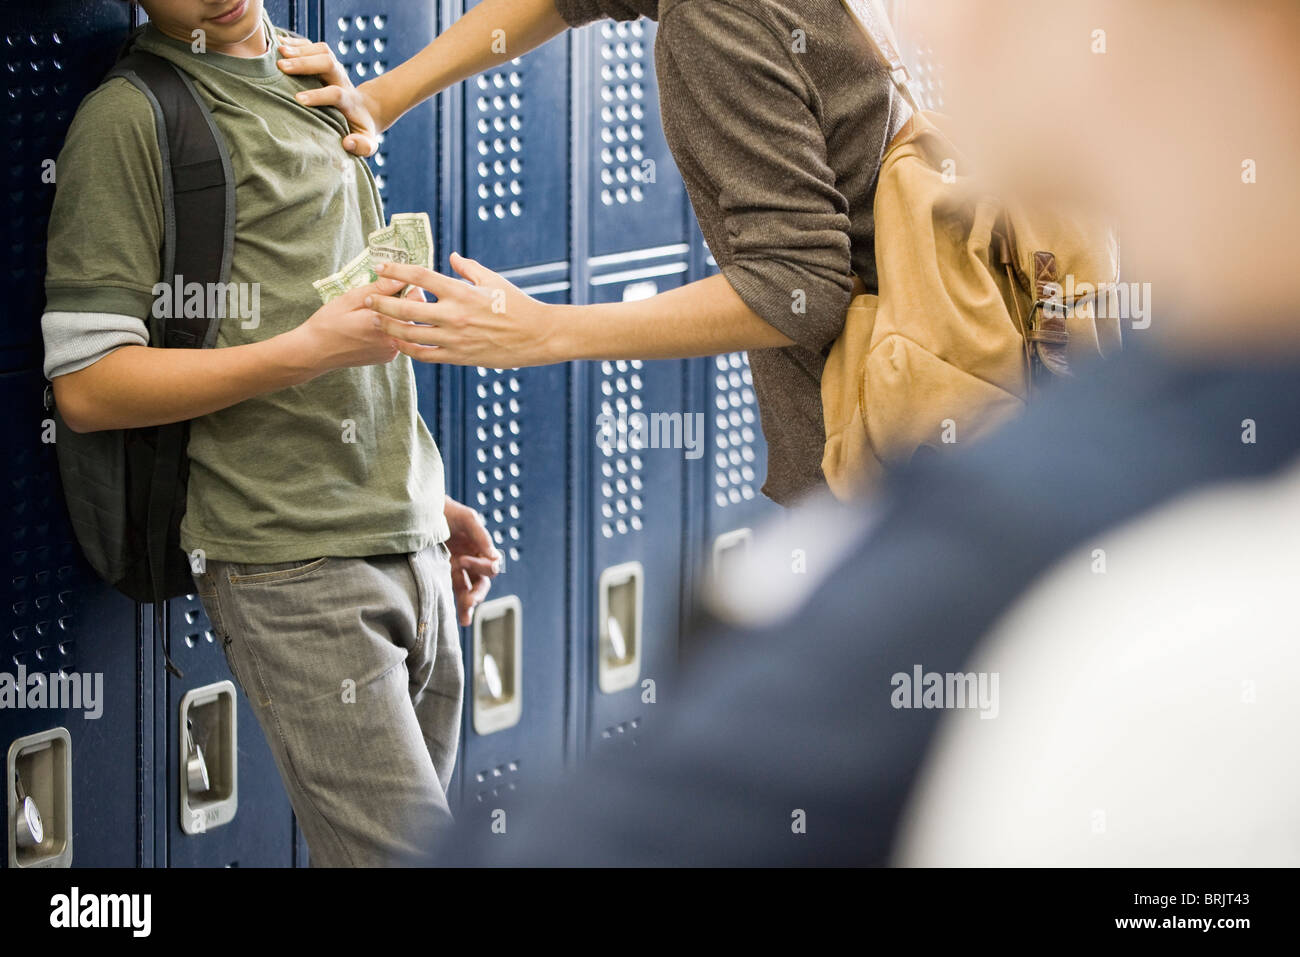 Teenage boy bullying classmate and stealing his money - Stock Image